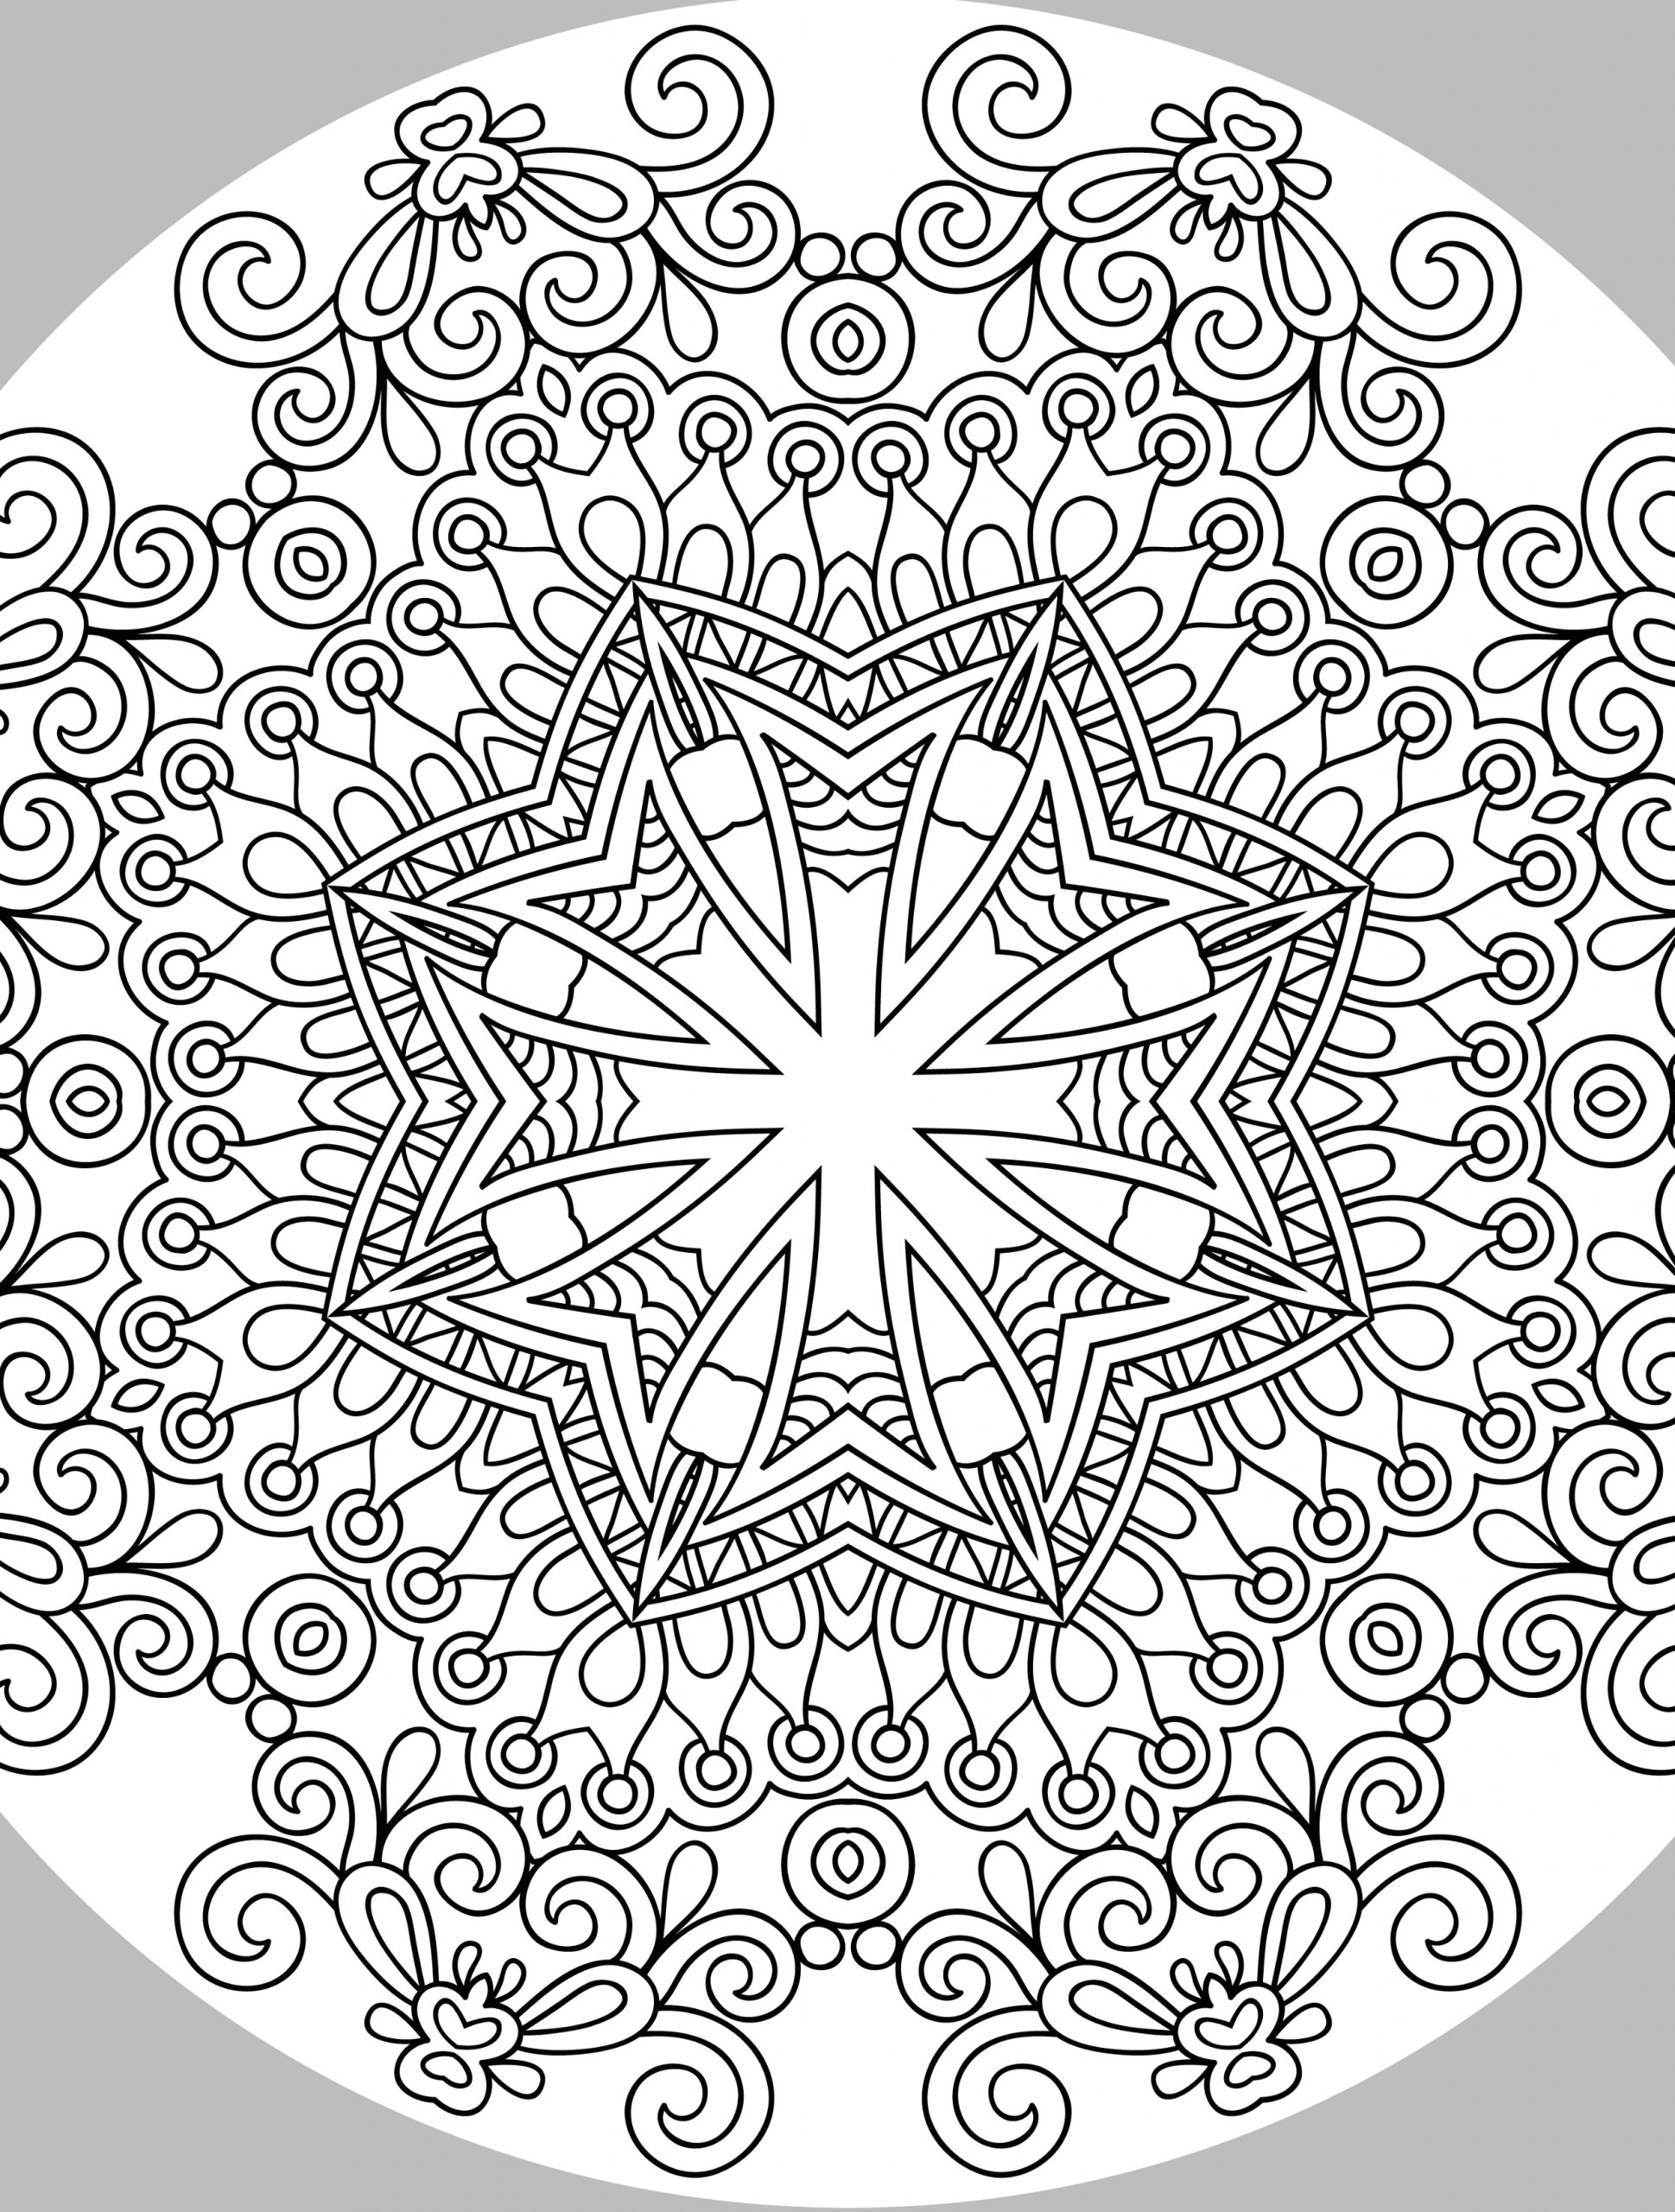 Free Printable Coloring Pages for Adults Christmas Printable Christmas Coloring Pages for Adults at